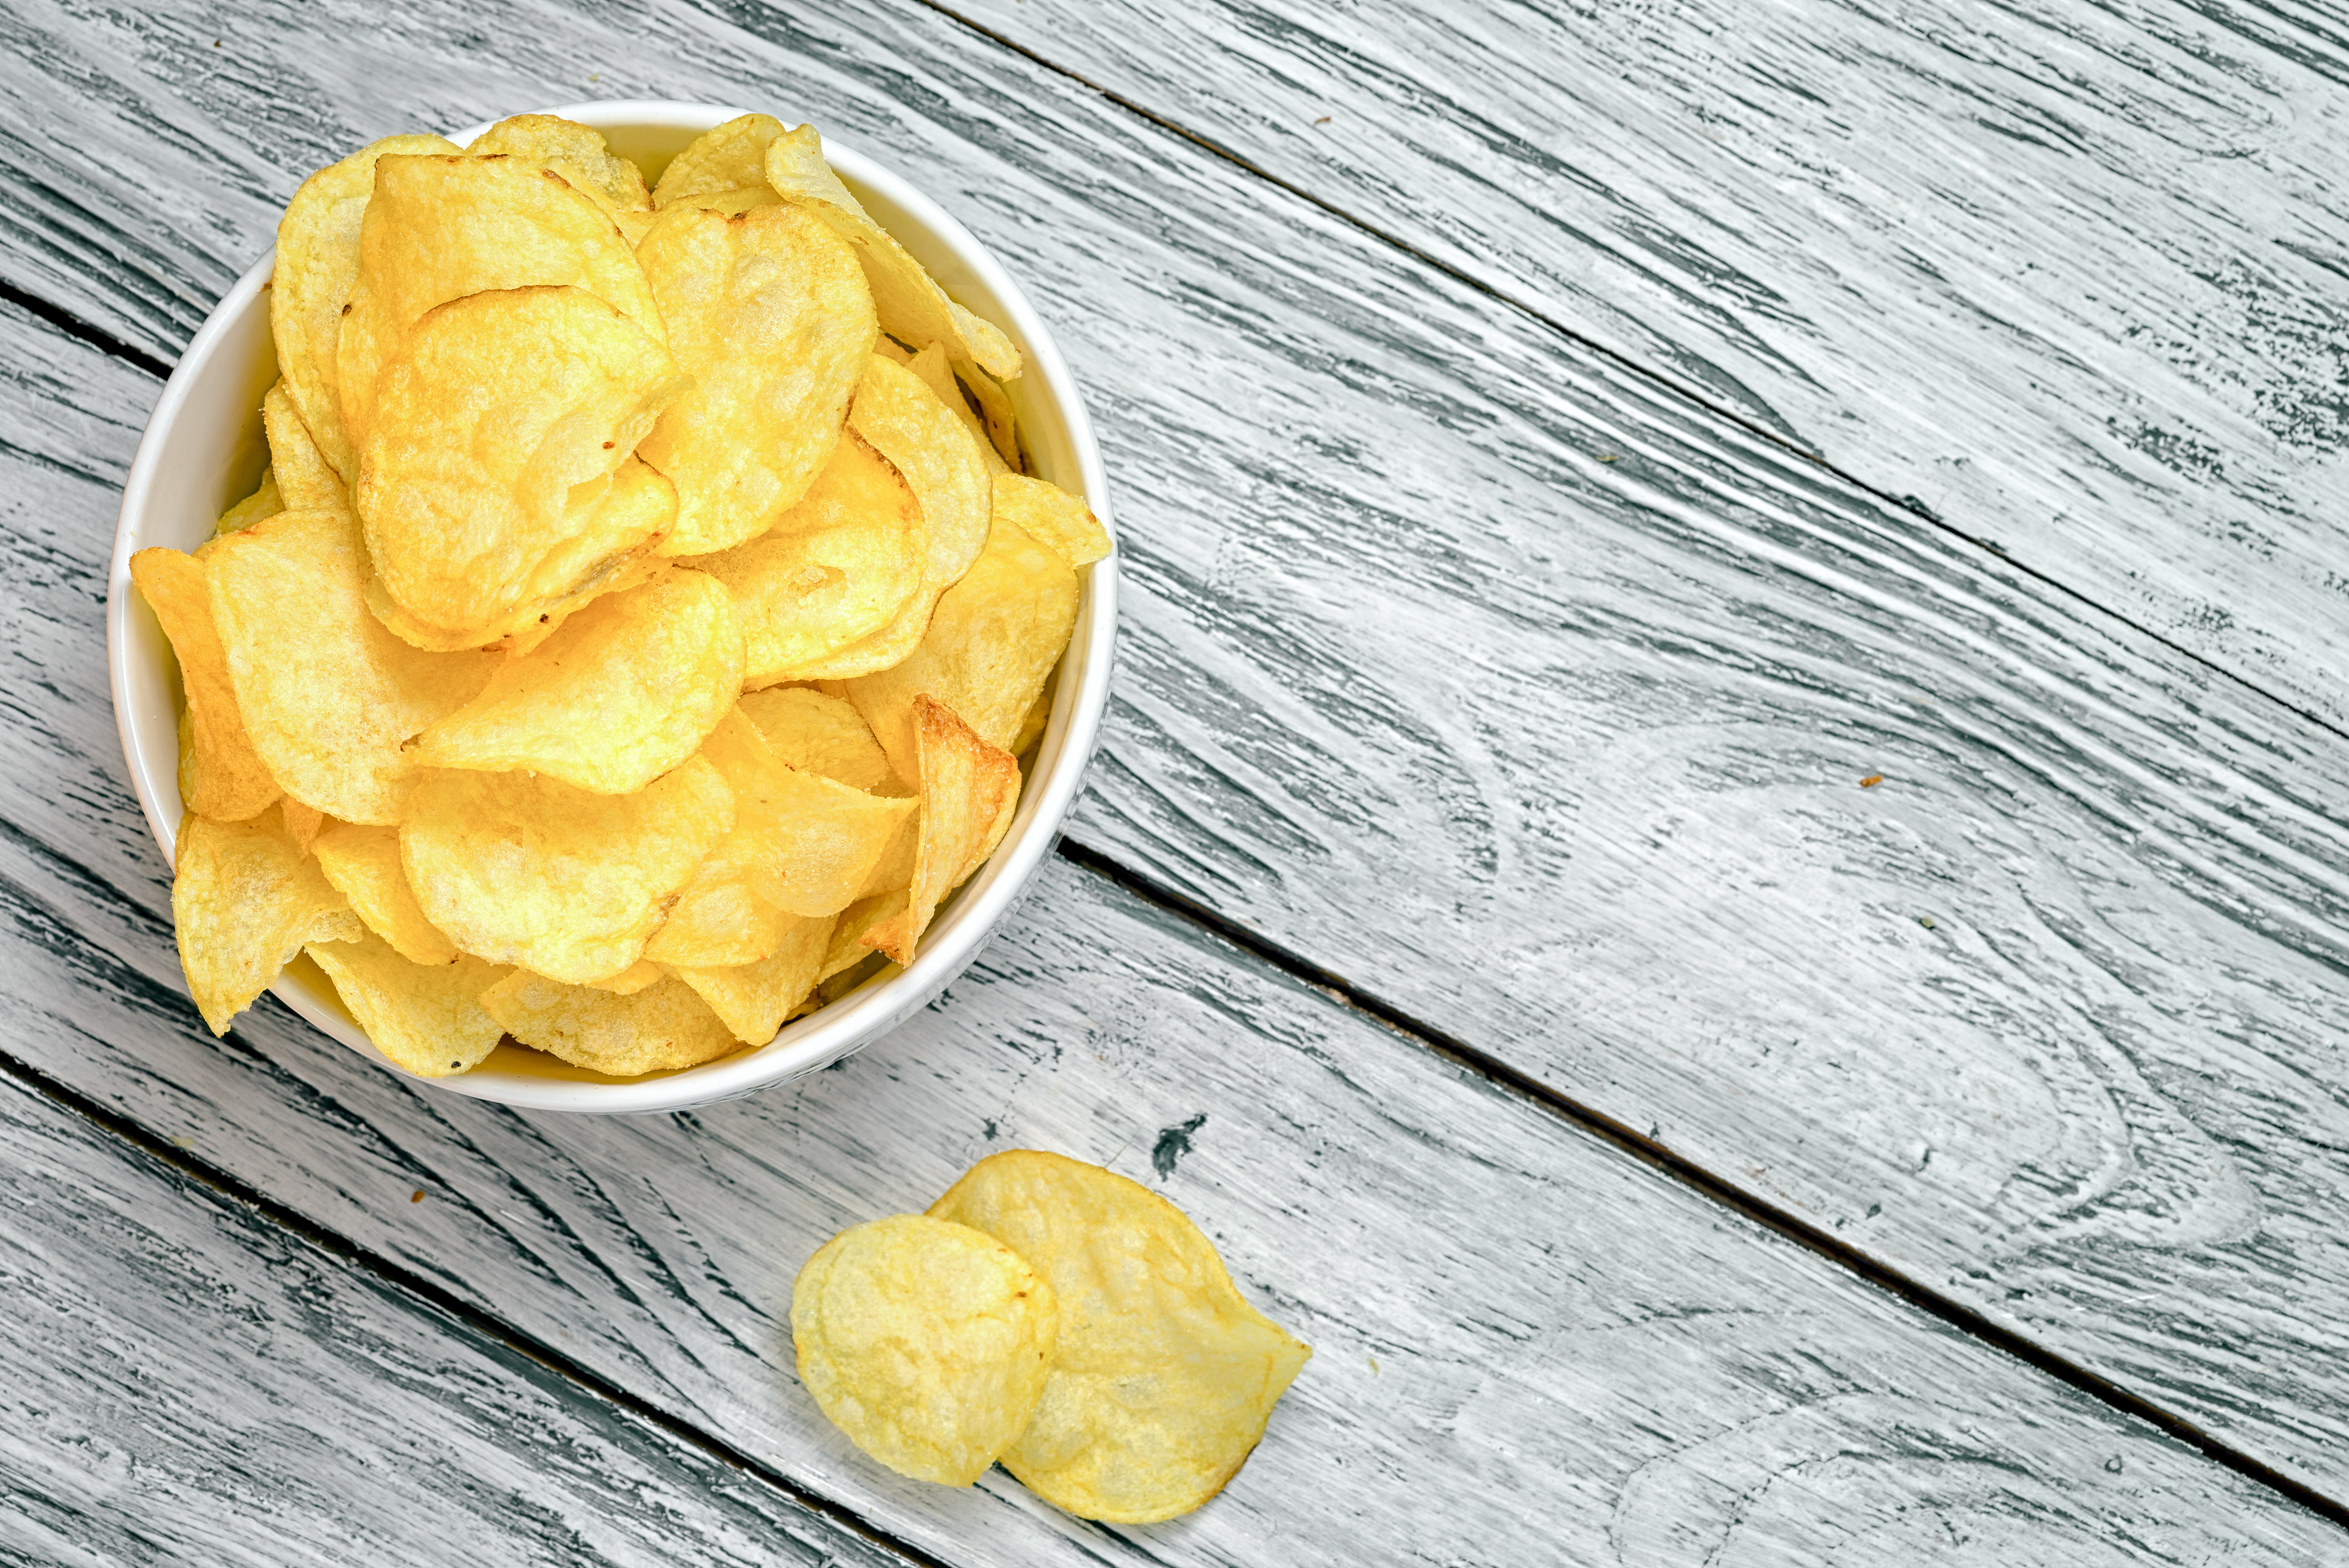 Does a Potato Have Potassium in It? | Healthy Eating | SF Gate